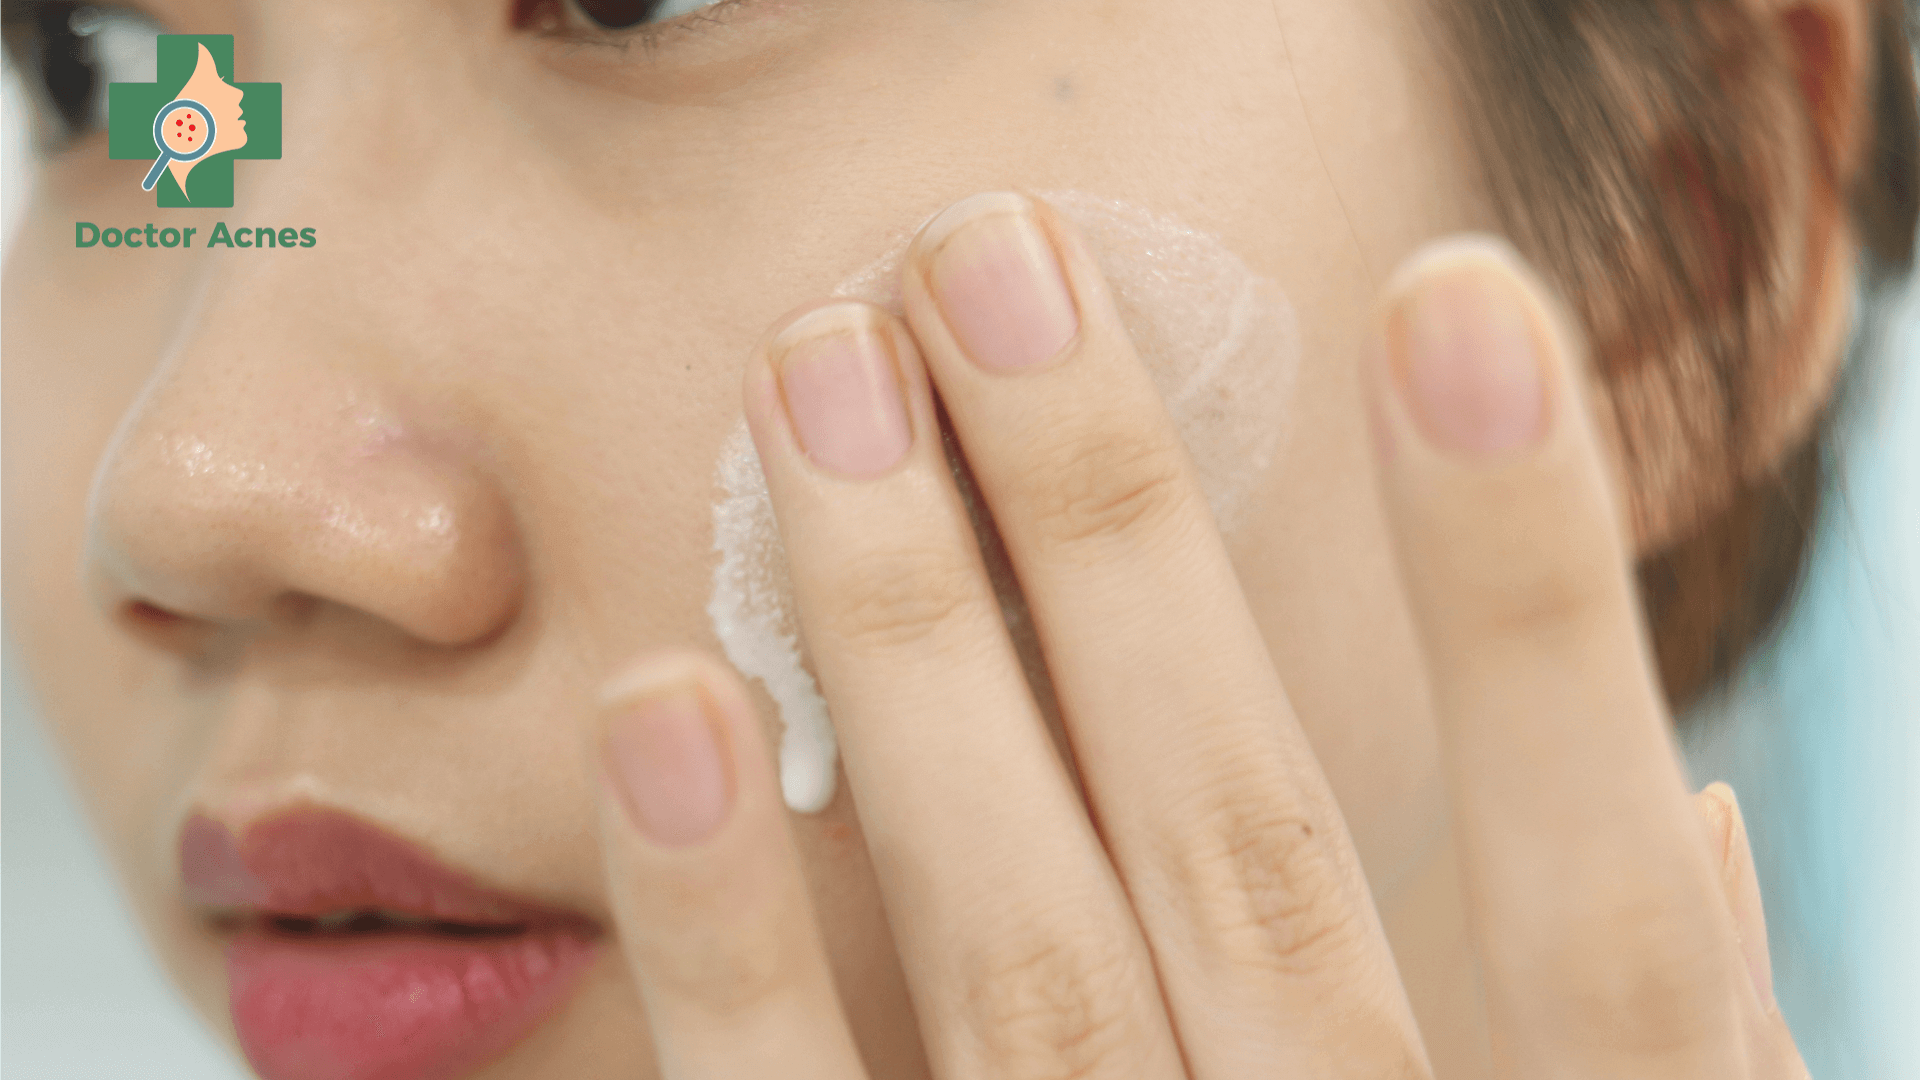 Thoa kem chống nắng - Doctor Acnes